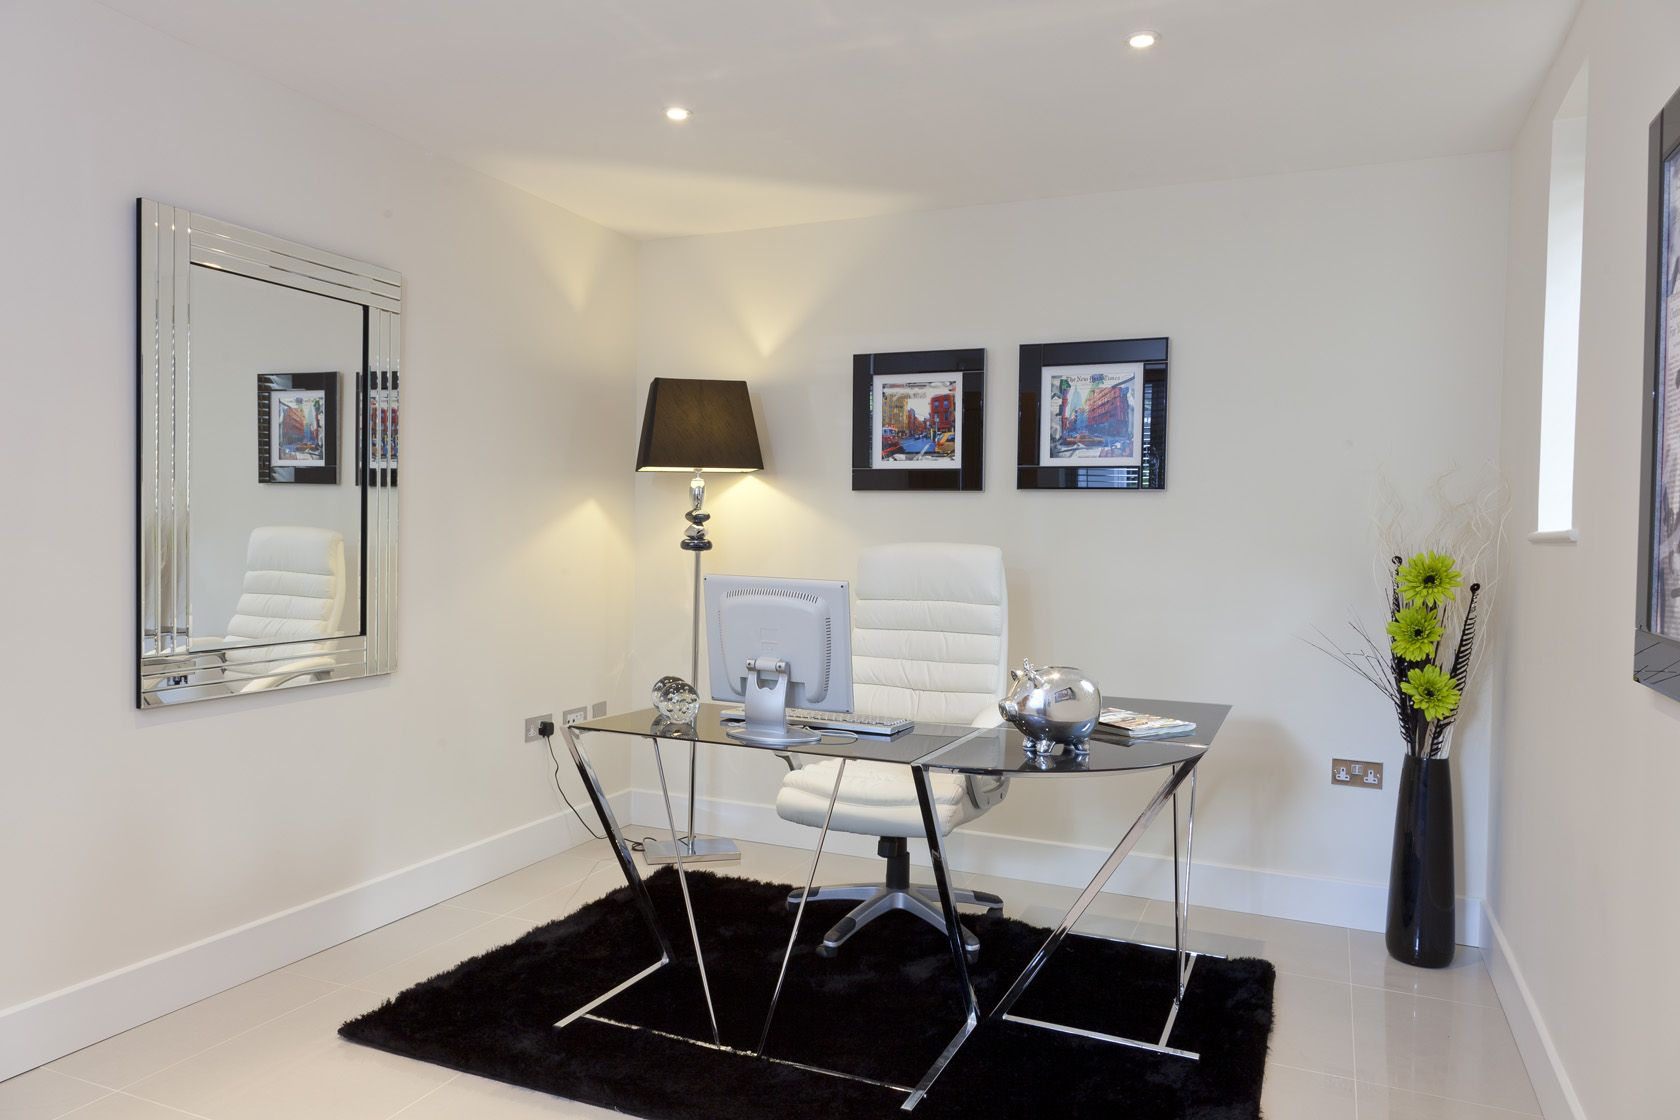 Office Space Our Show Homes Interior Design Projects Pinterest